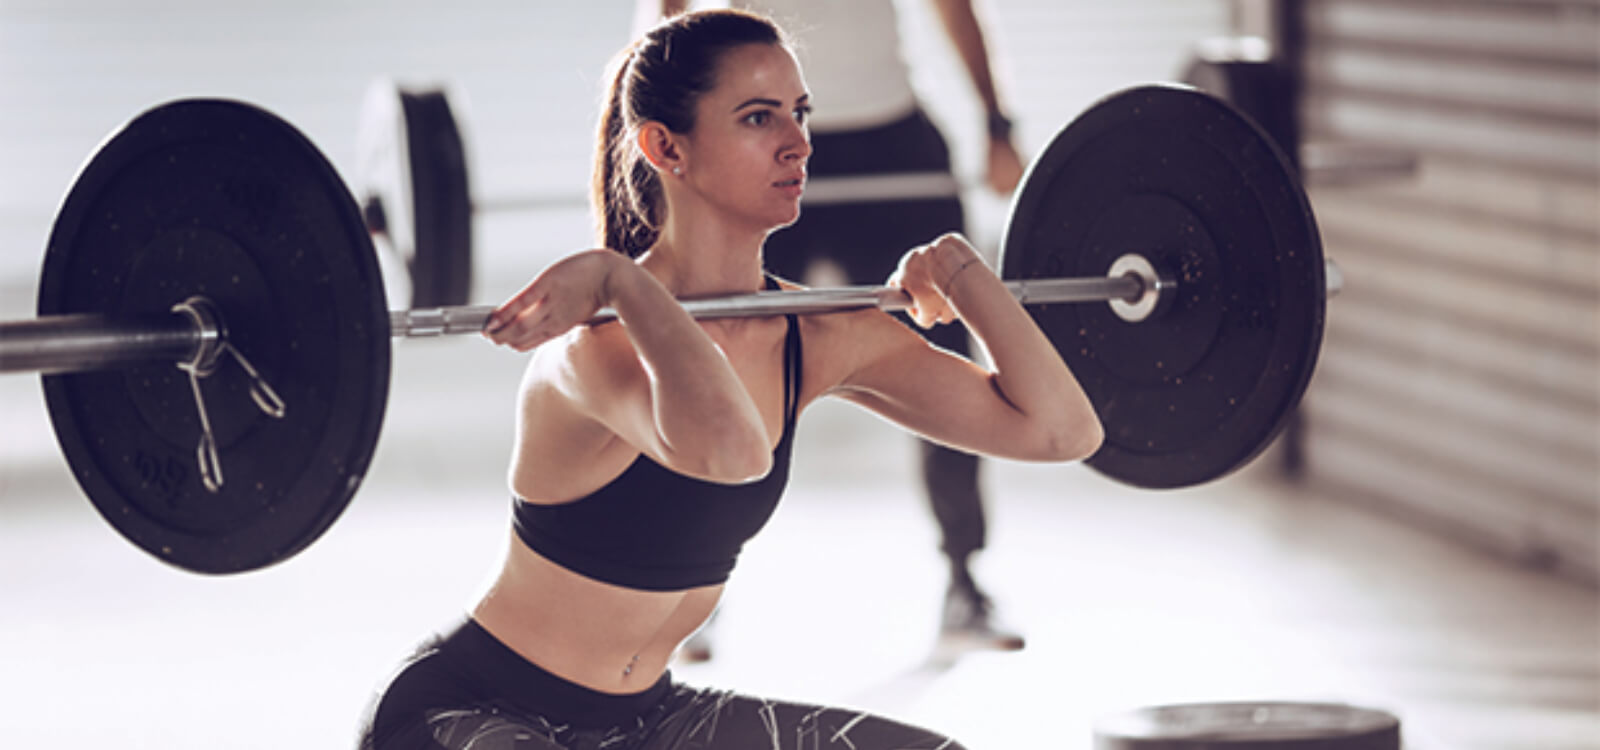 This Is the Definitive Guide on How to Front Squat (Safely and with Proper Form)